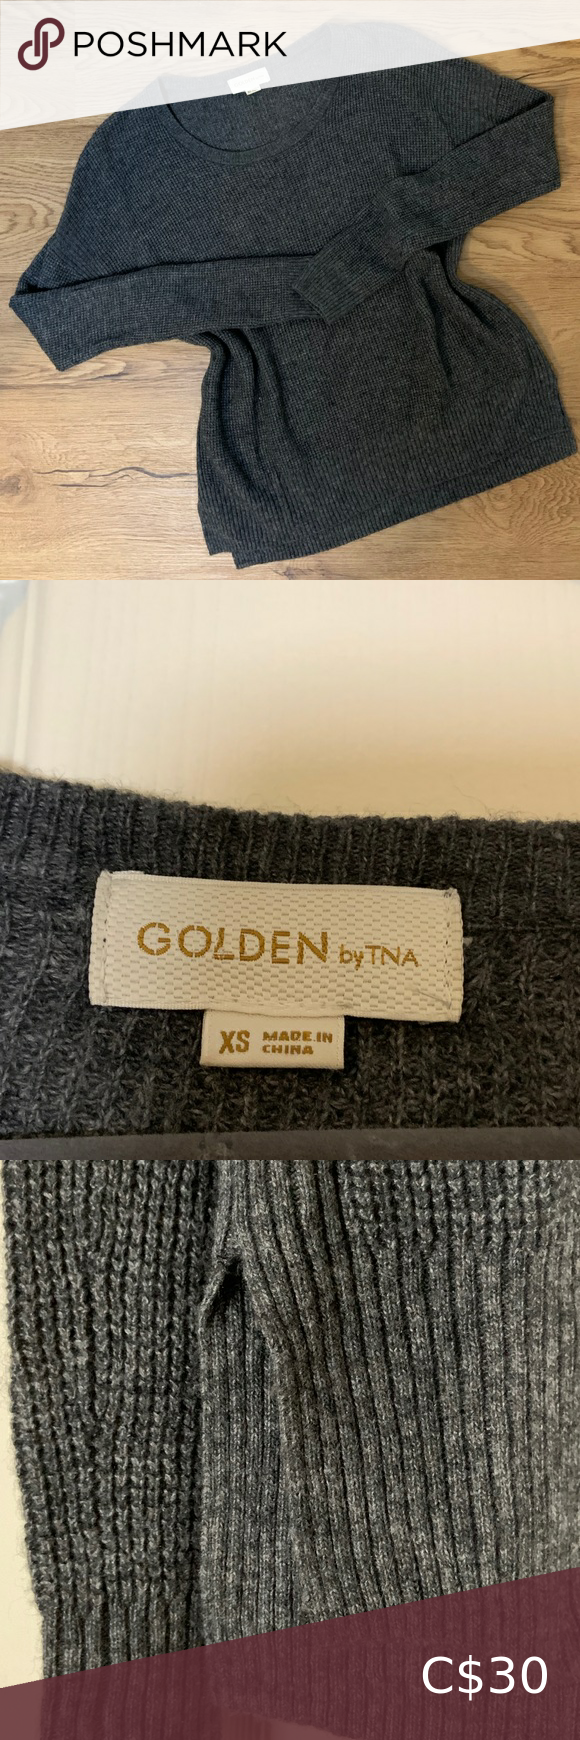 GOLDEN BY TNA✨| WAFFLE THERMAL KNIT